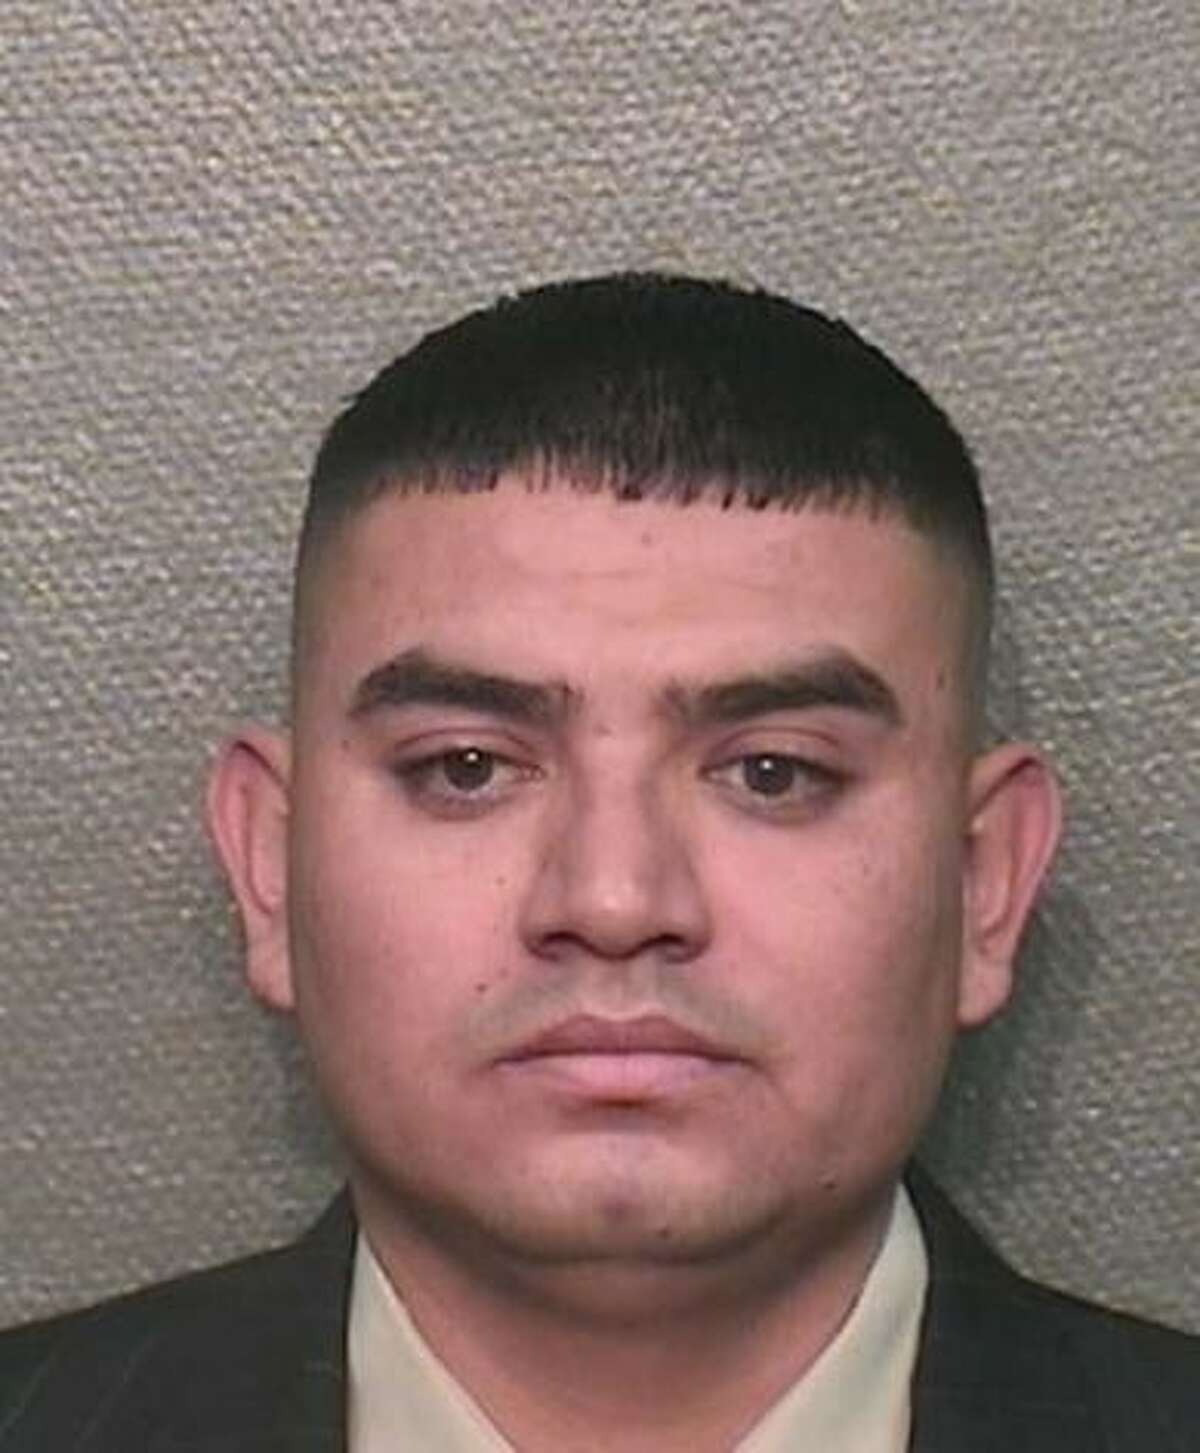 HPD Officer Adan Jimenez Carranza, 32, is charged with aggravated assault of an adult. He allegedly raped a woman while on duty on June 18, 2012.